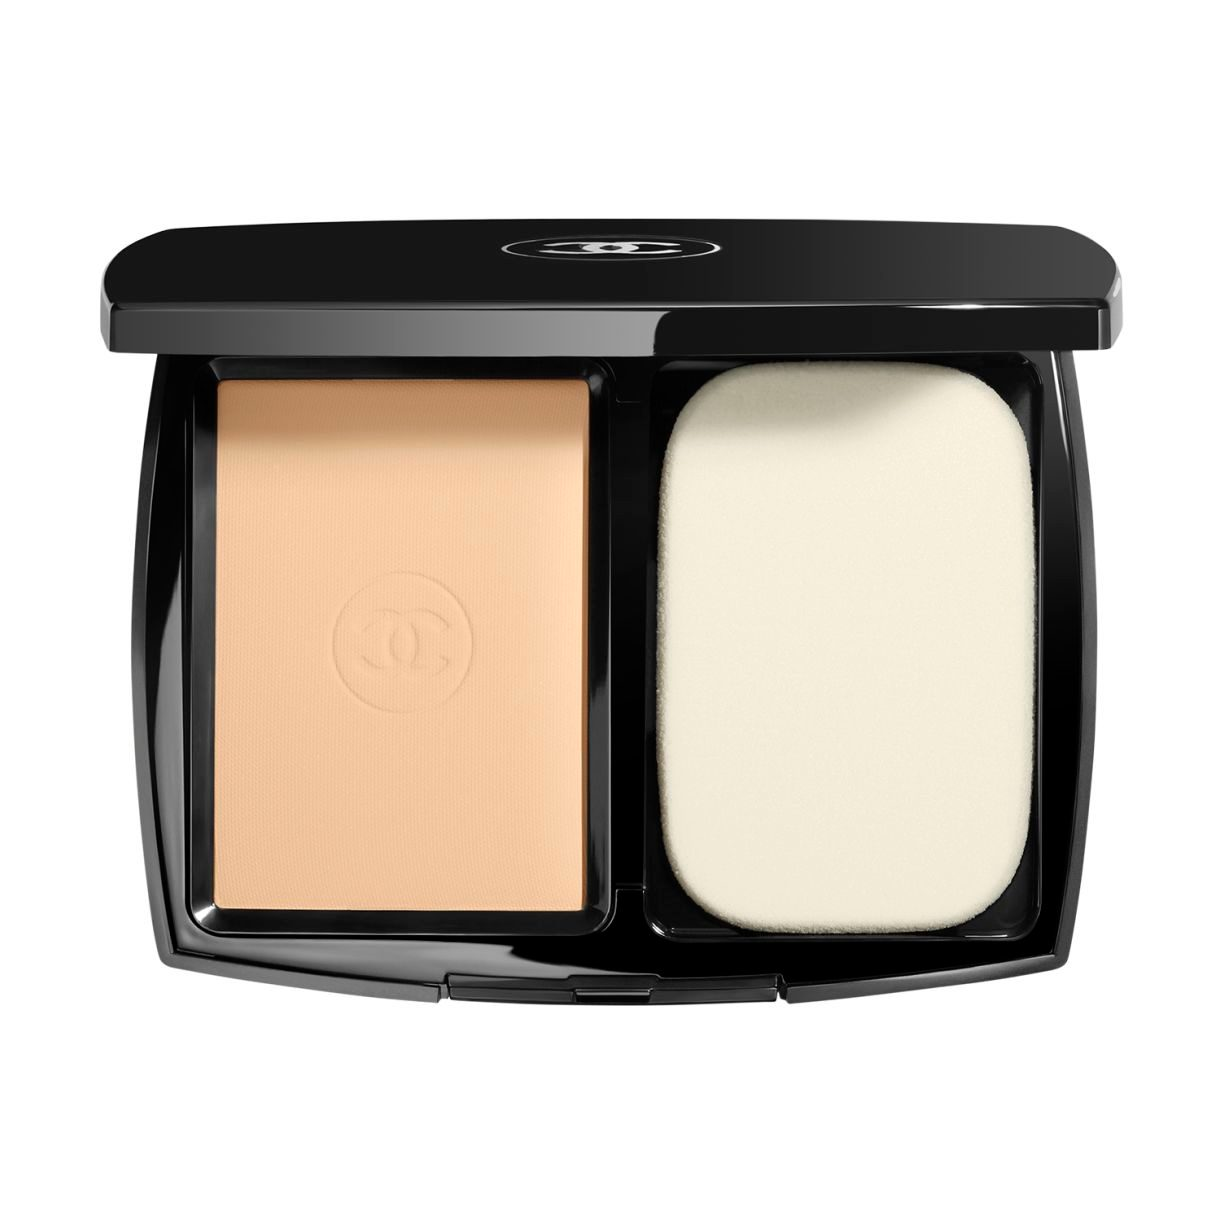 LE TEINT ULTRA TENUE TEINT COMPACT HAUTE PERFECTION 10 - BEIGE